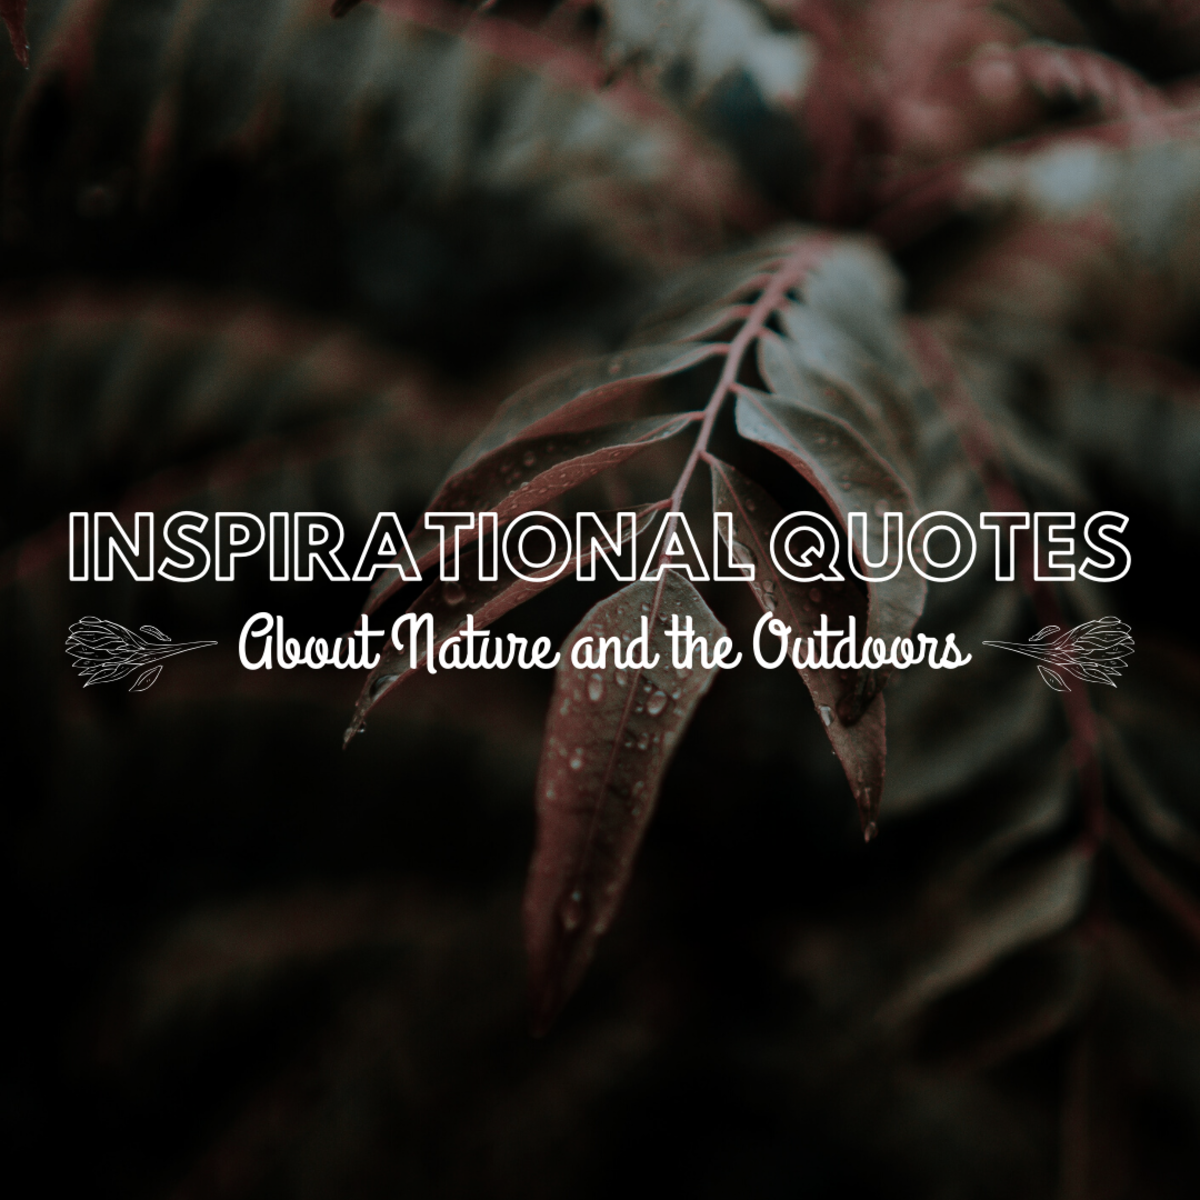 Inspirational Quotes About Nature and the Outdoors